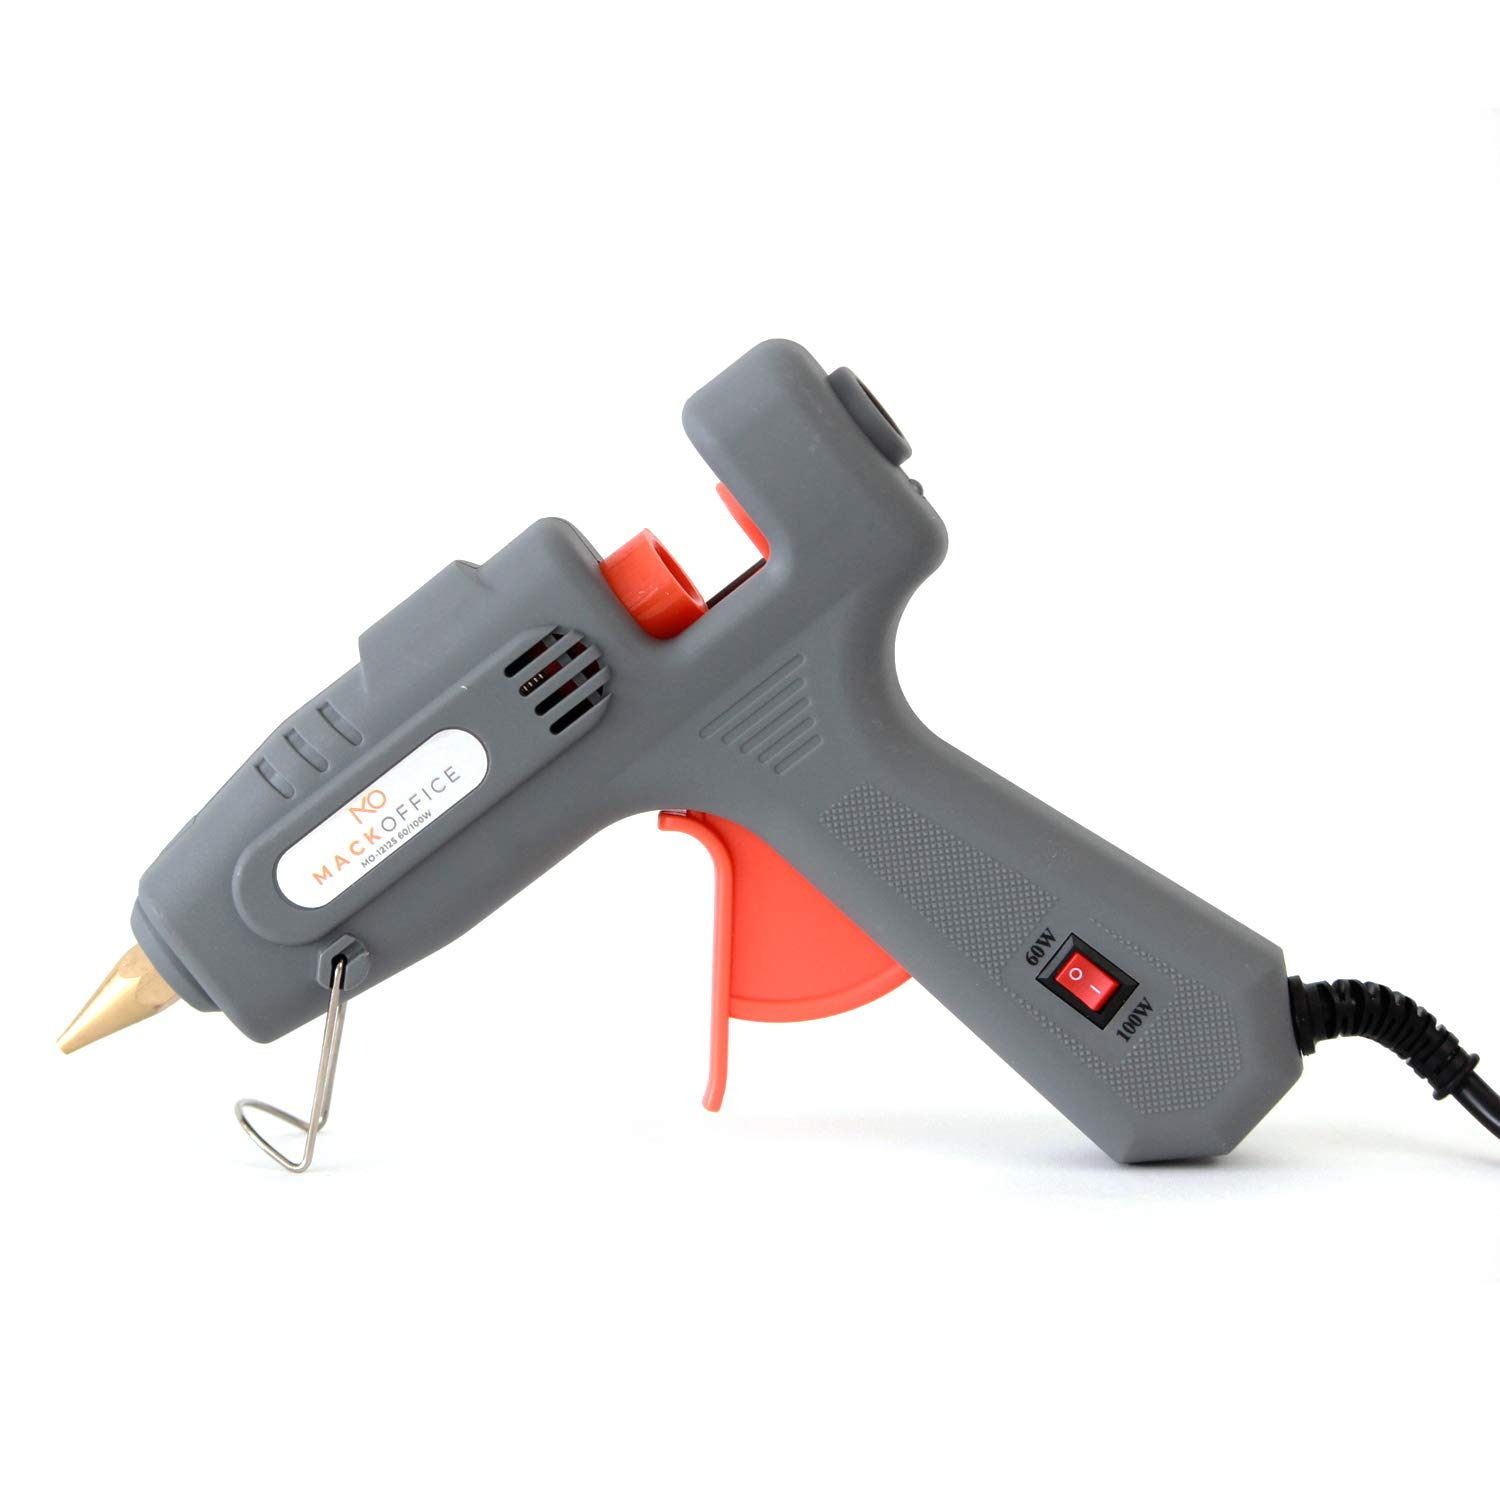 MackOffice Professional Glue Gun Full Size (Not Mini) Hot Melt Glue Gun 60/100W Dual Power High Temp Heavy Duty Melt Glue Gun best for Work | Home and for Arts & Crafts Use,Christmas Decoration/Gifts by MACKOFFICE (Image #2)